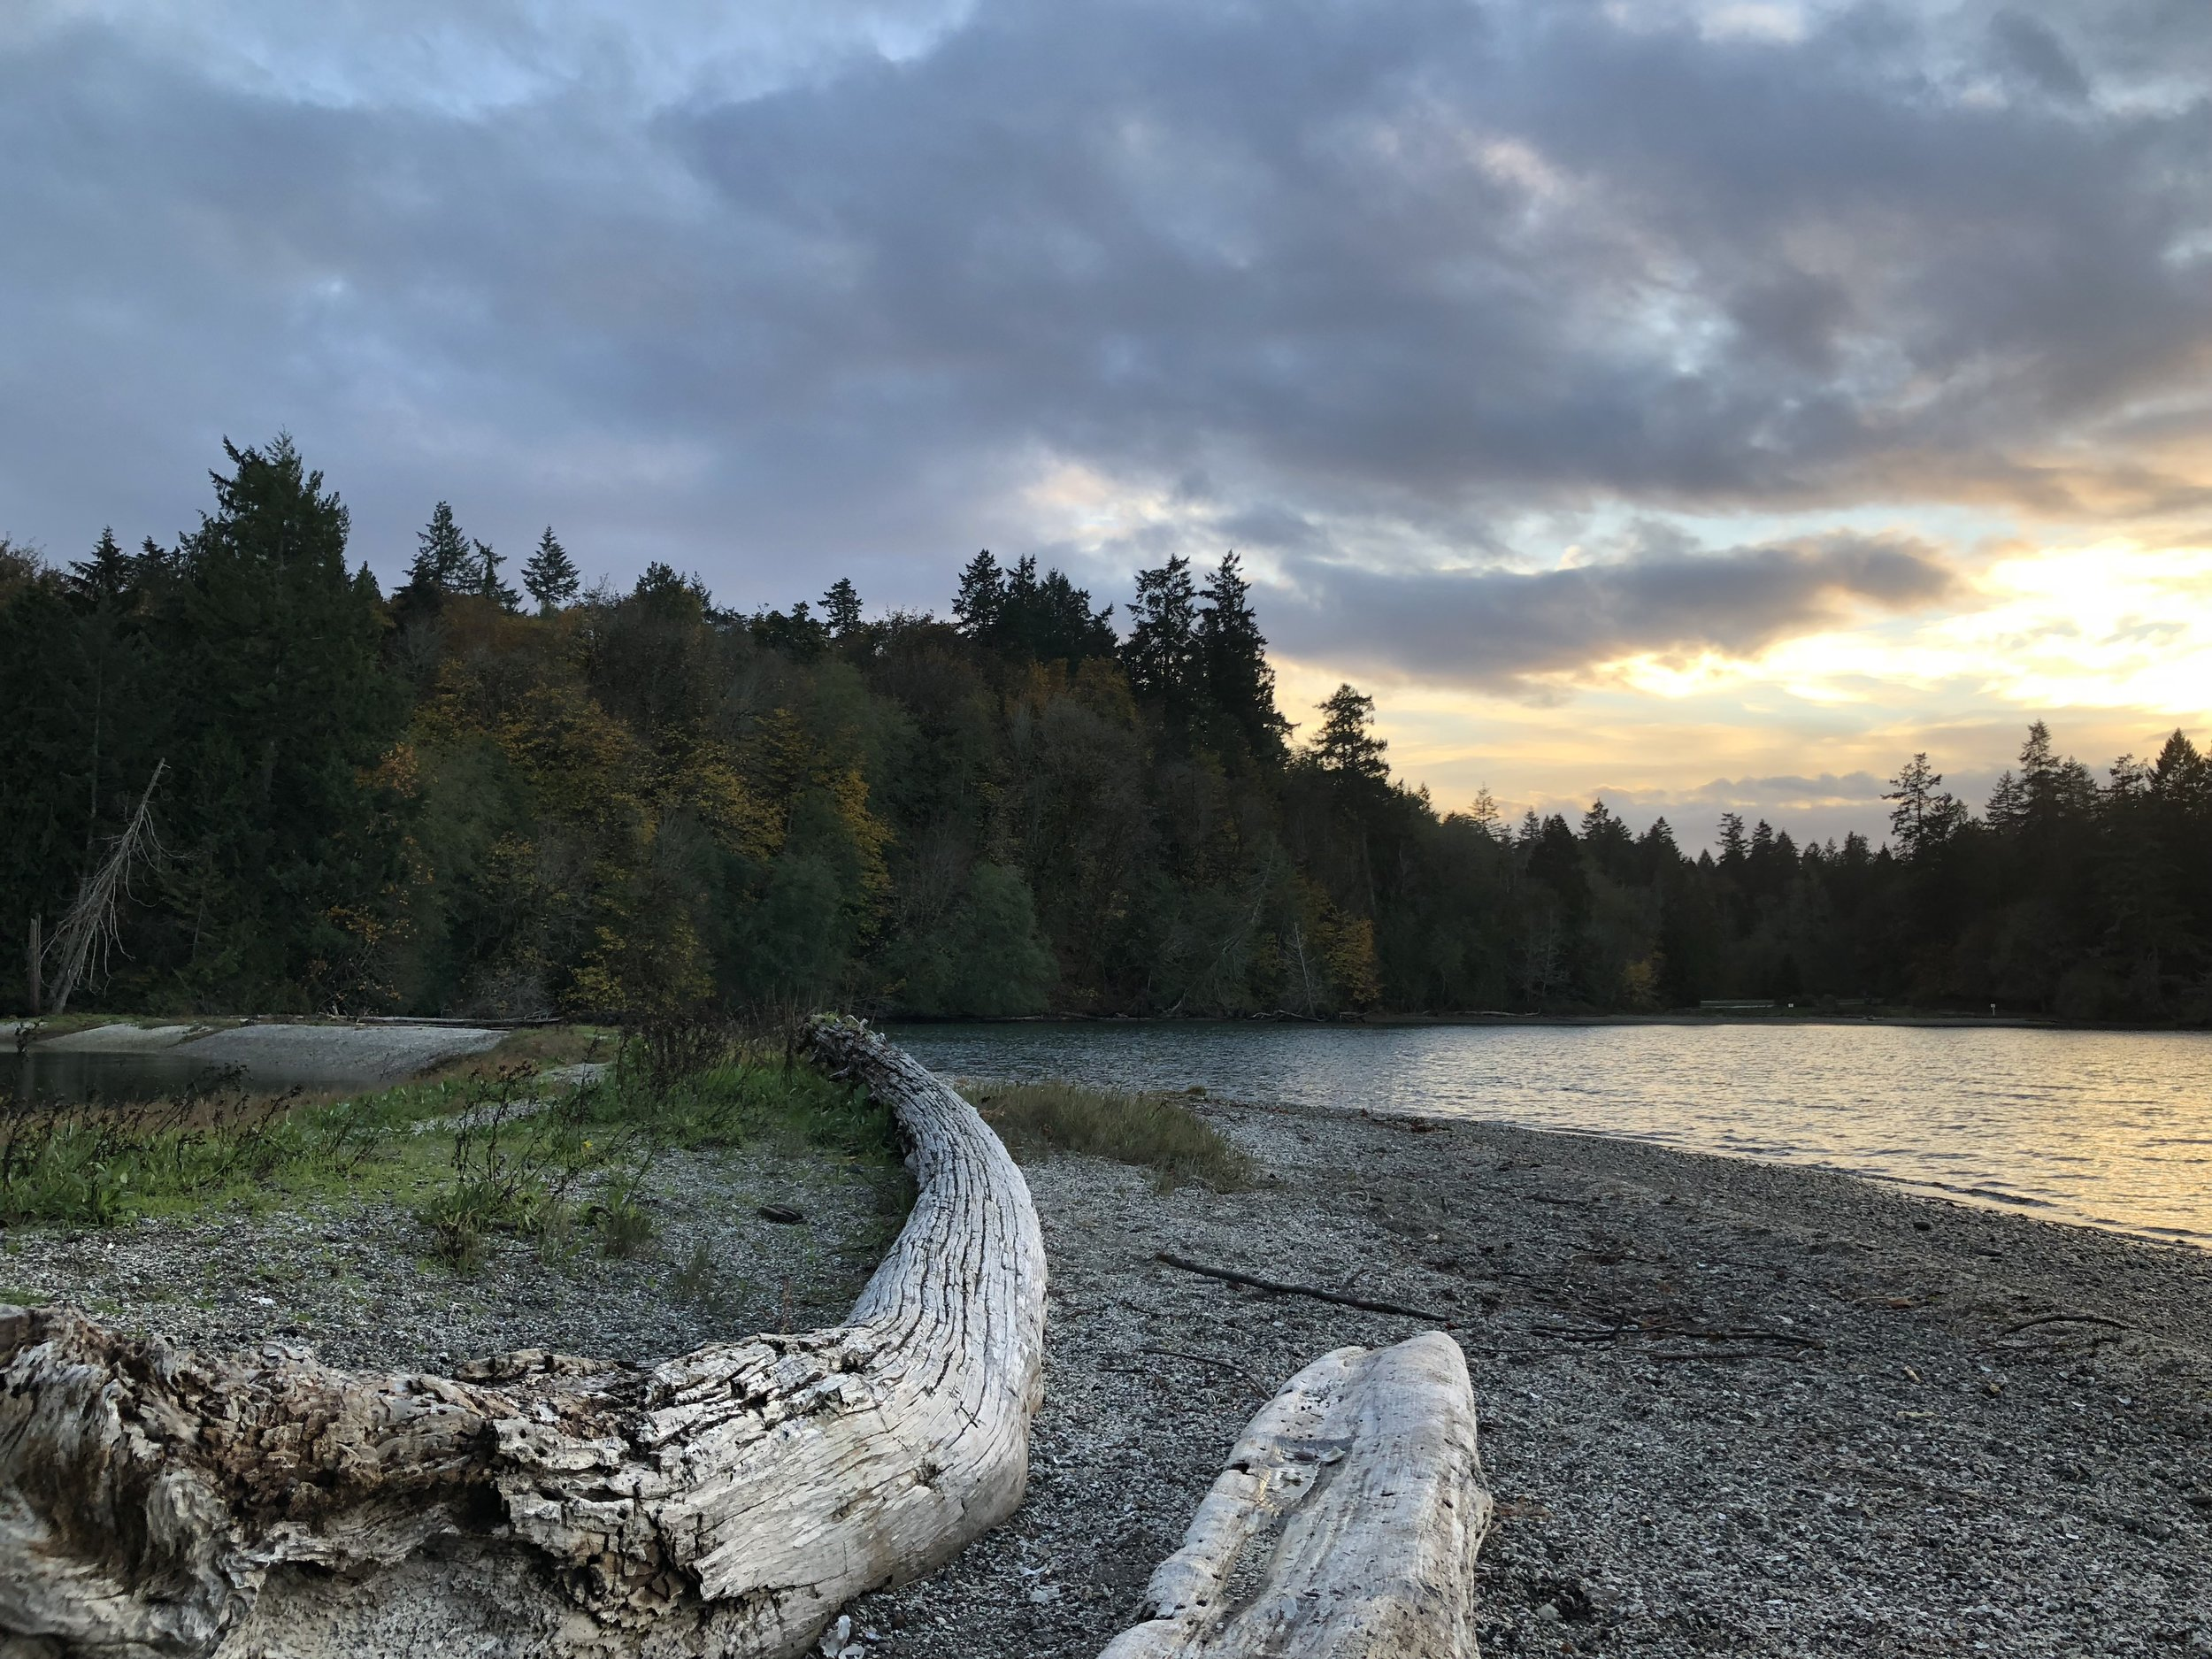 Penrose Point State Park is 10 minutes away with wooded trails, beaches, camping, and picnic grounds.